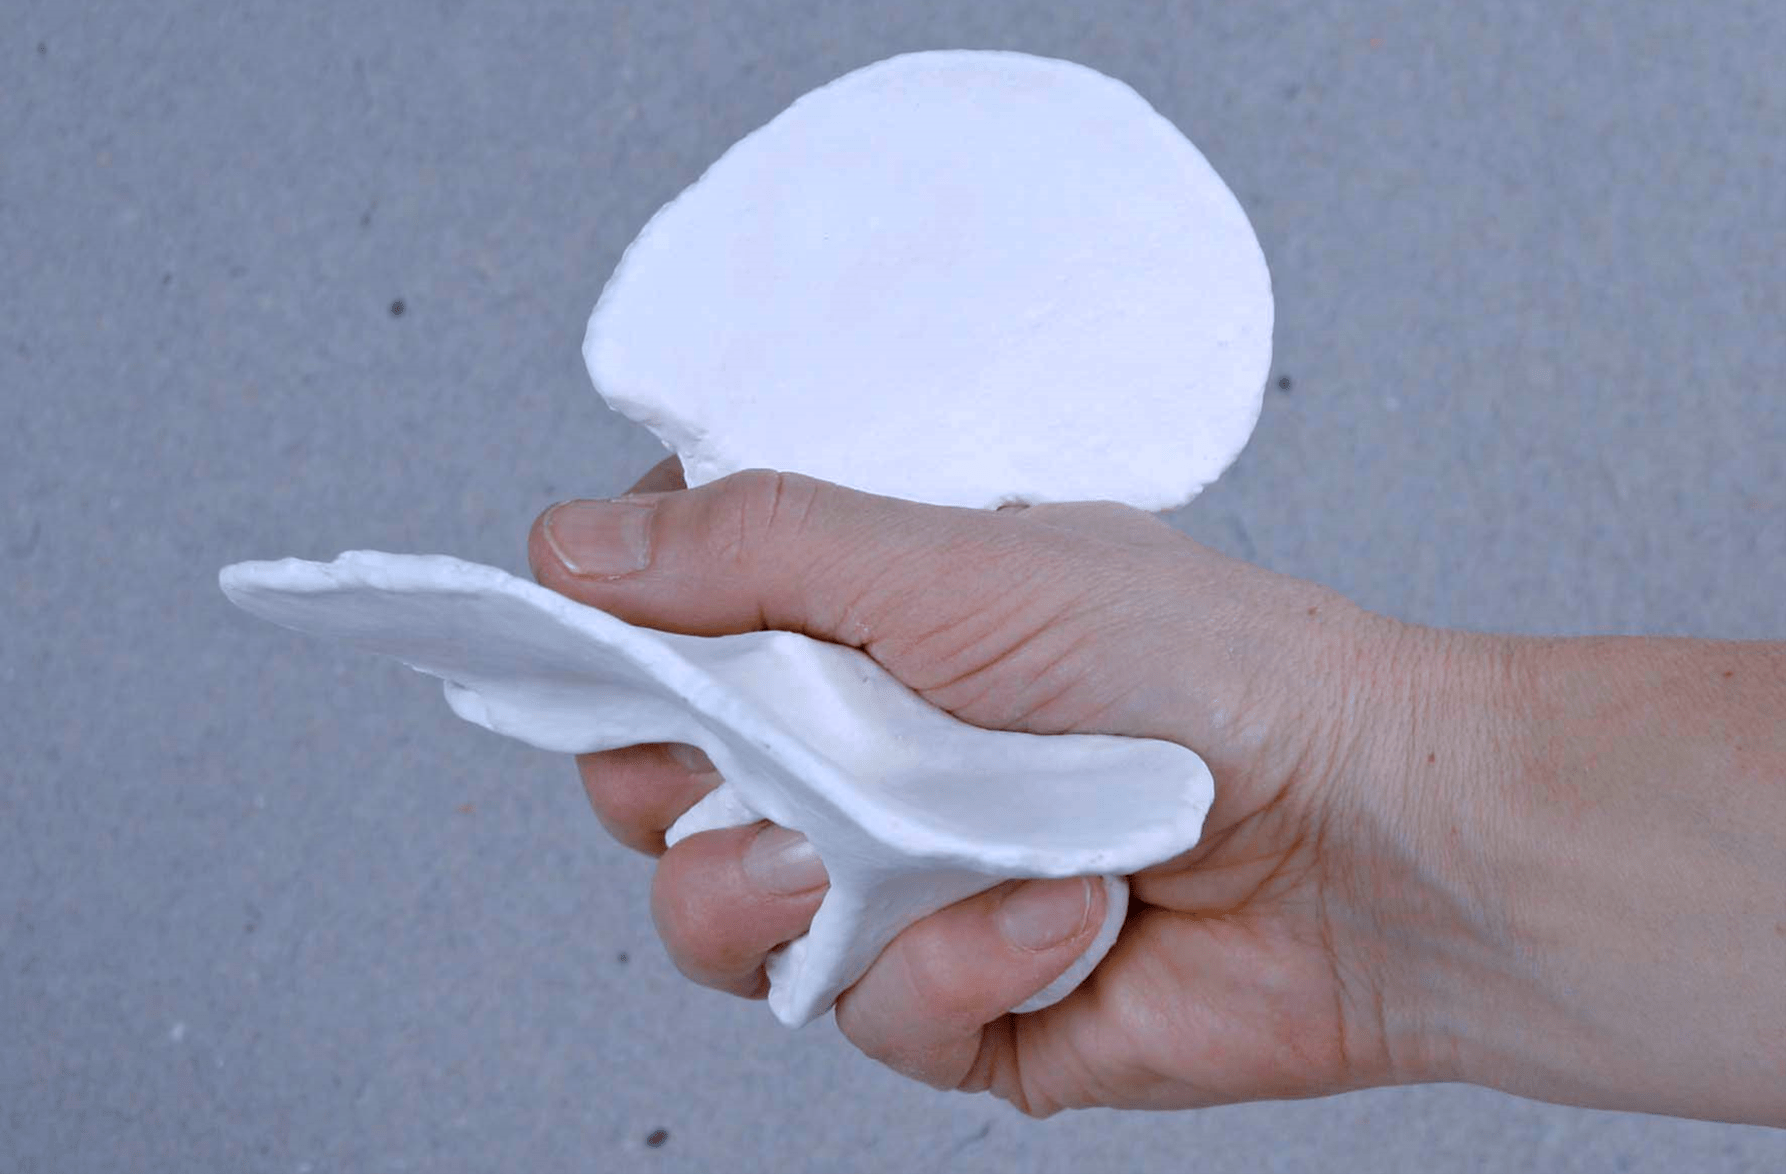 Image 1: 'Grip to get a grip of form'. Photograph demonstrating interaction between the grip and a Hand sketch (porcelain). (Heimer, 2020, cover page).